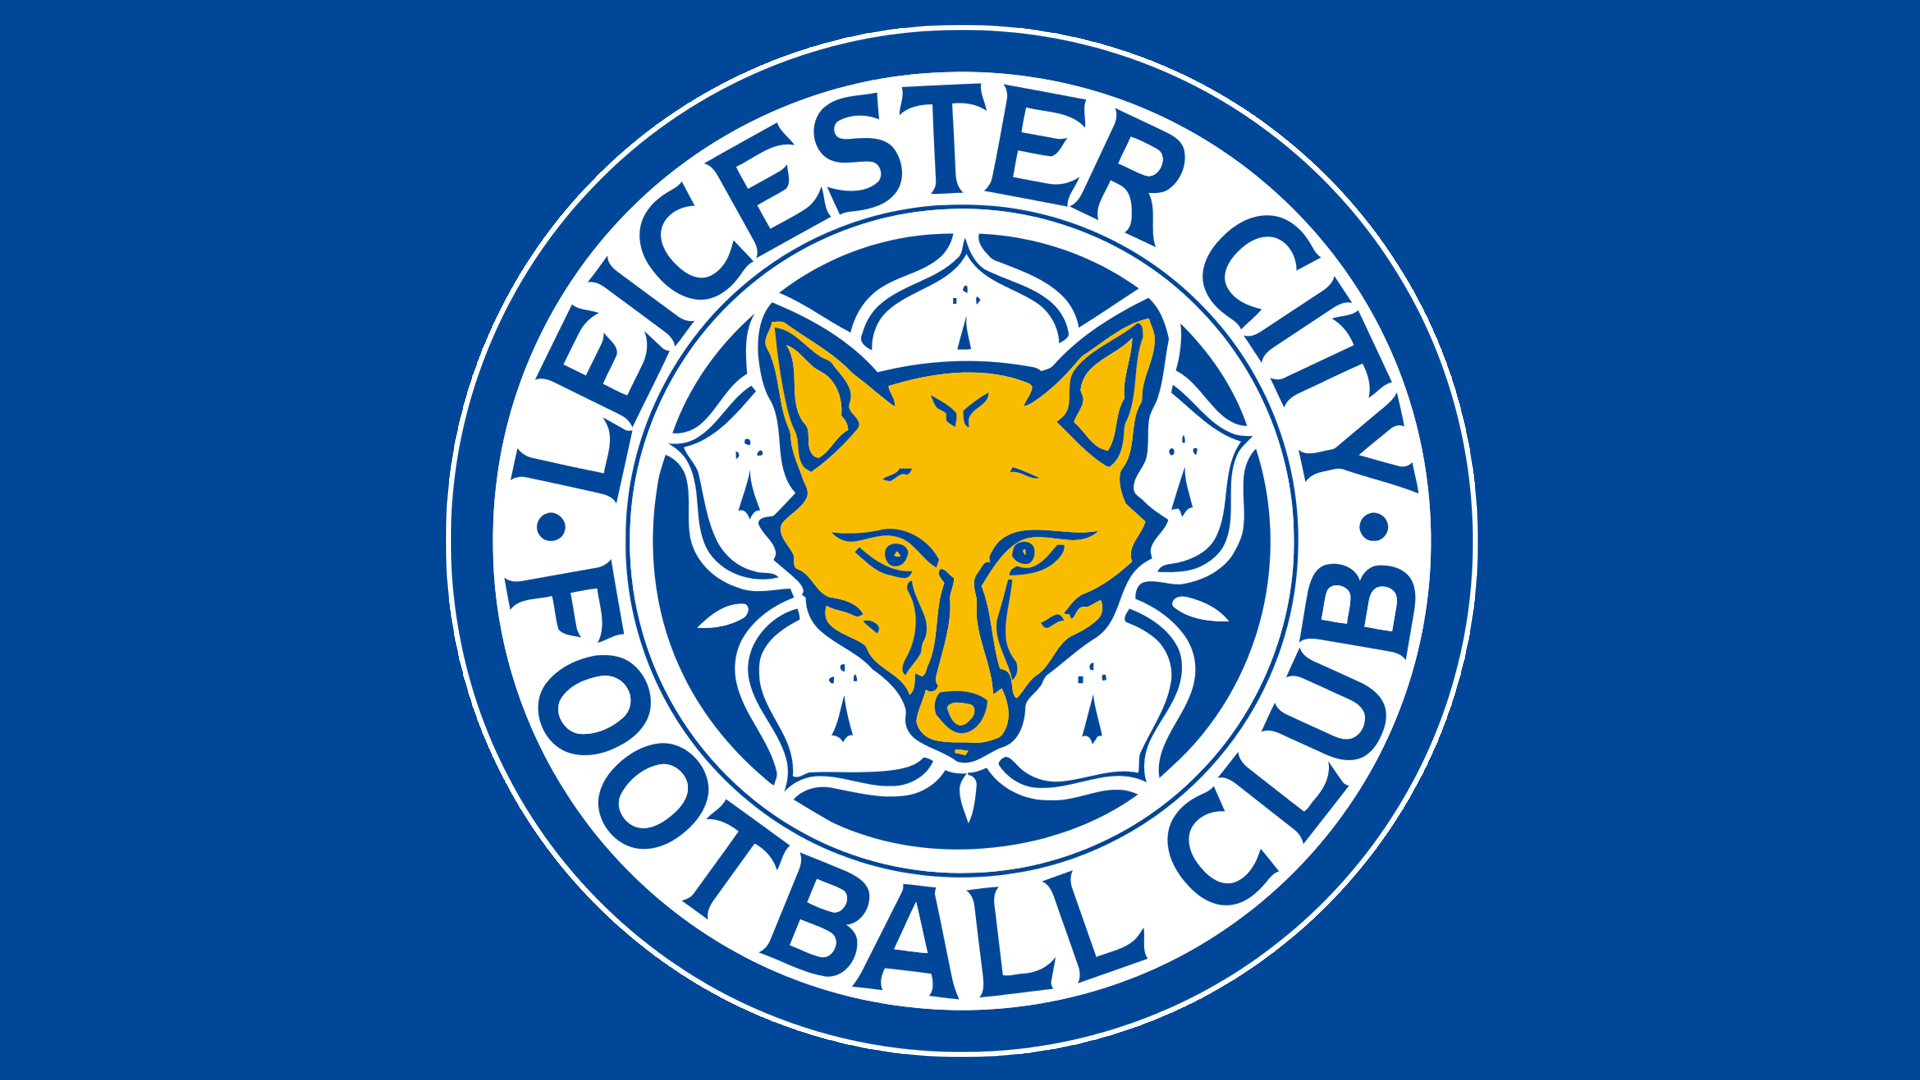 Leicester City F.C. HD Wallpaper | Background Image | 1920x1080 | ID:1055898 - Wallpaper Abyss